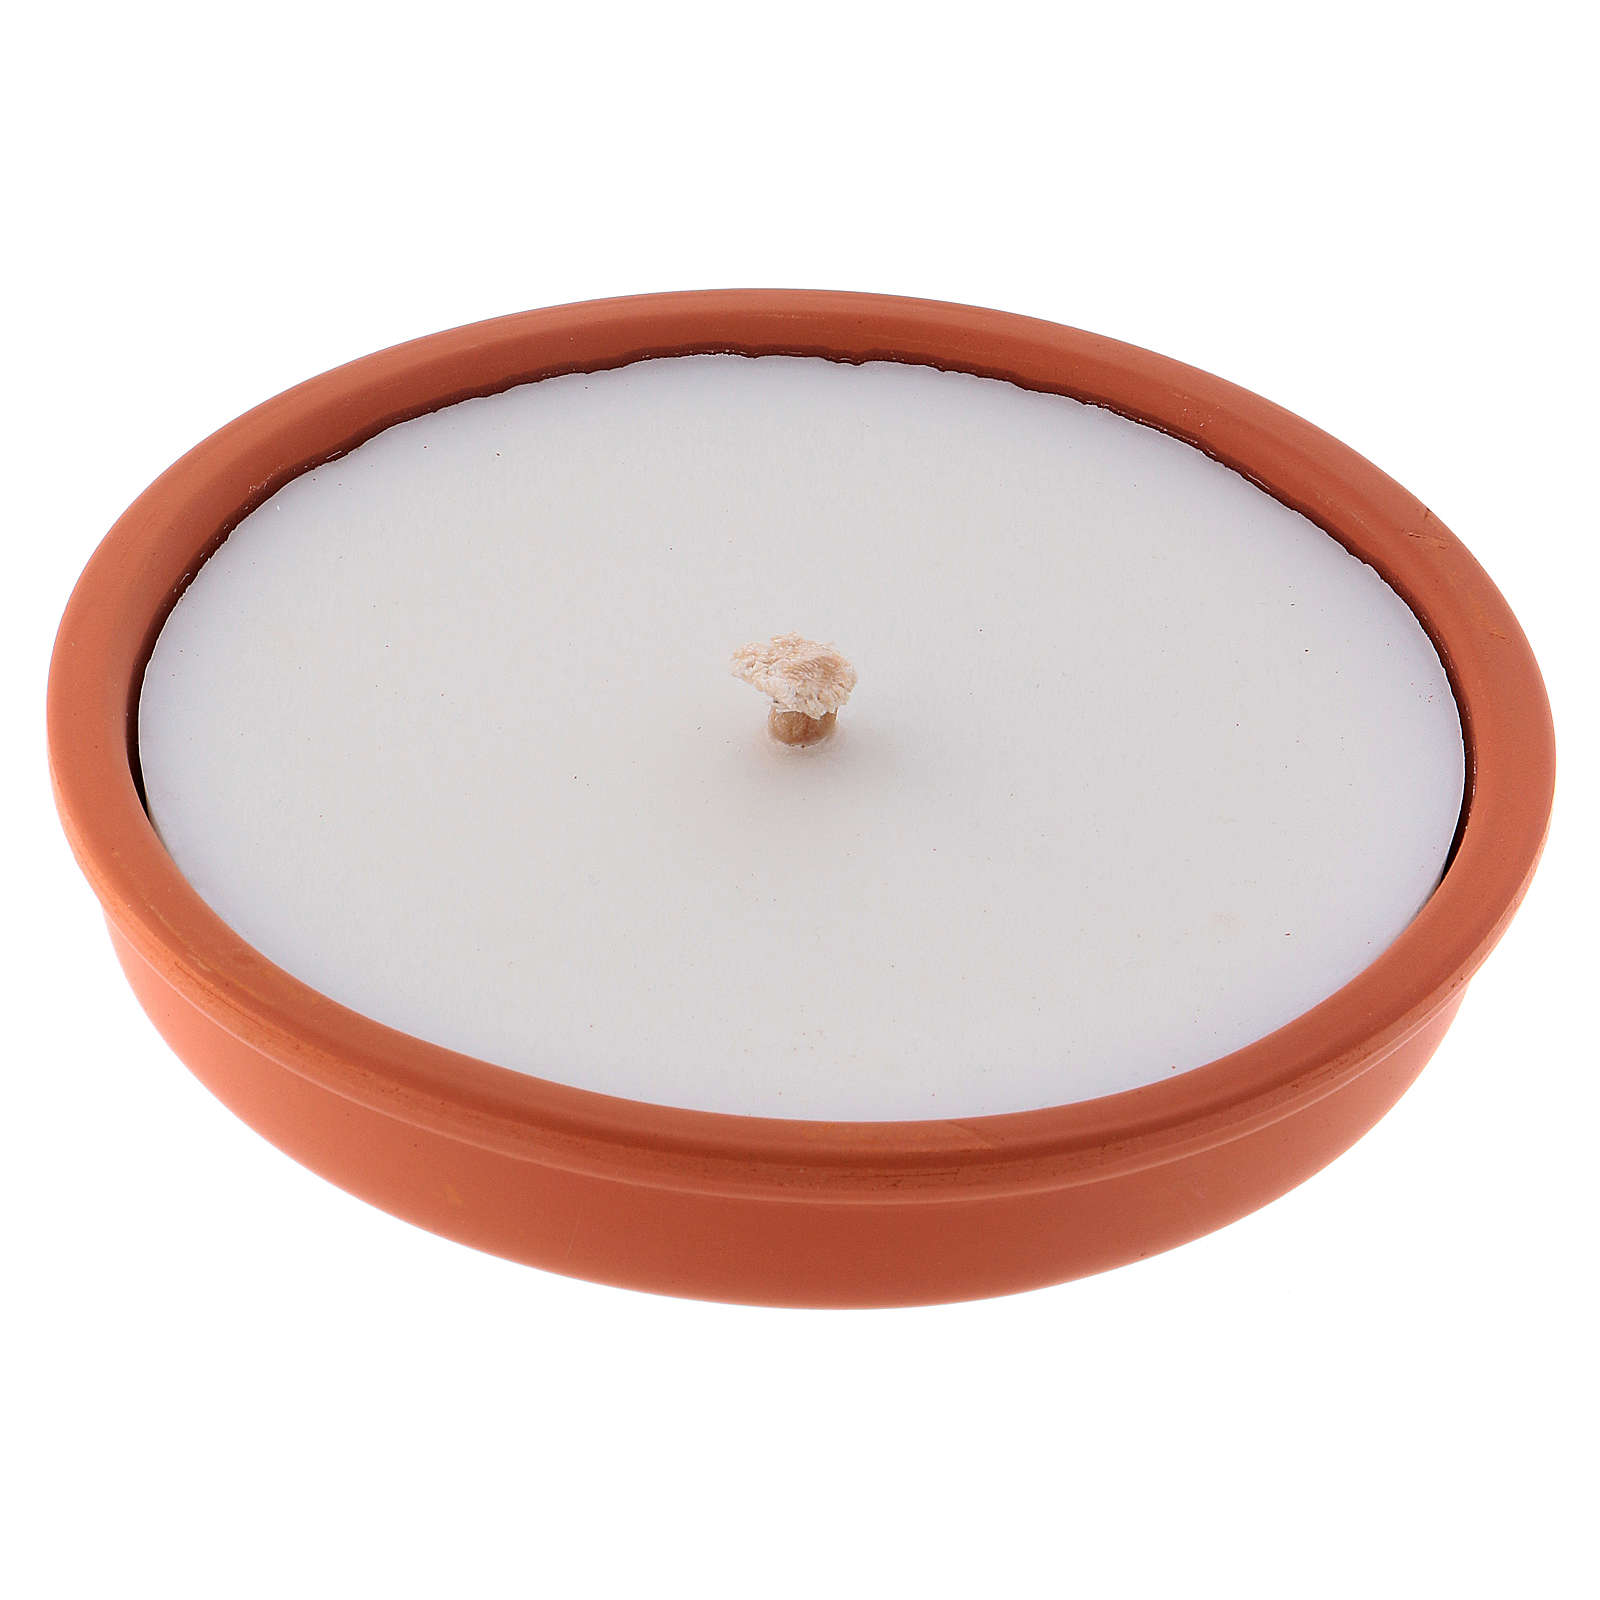 Candle for outdoor use in white wax and terracotta 3